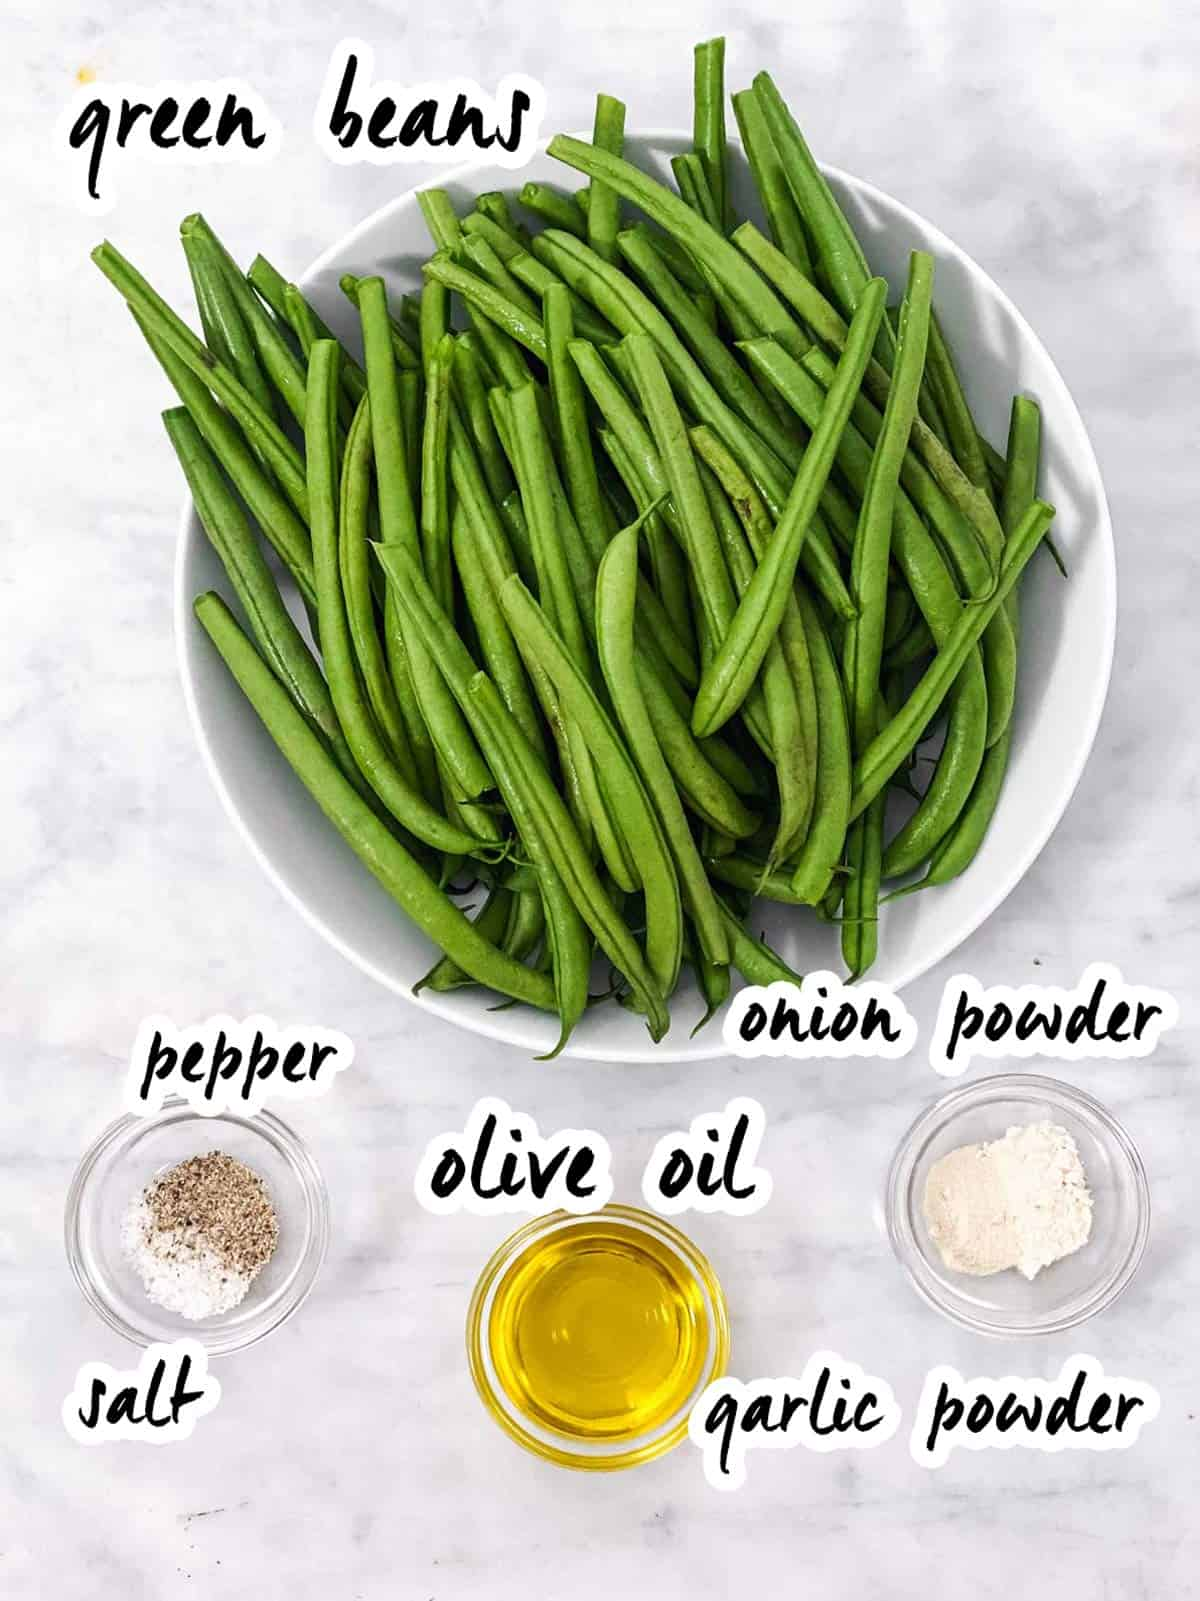 ingredients for air fried green beans with text labels